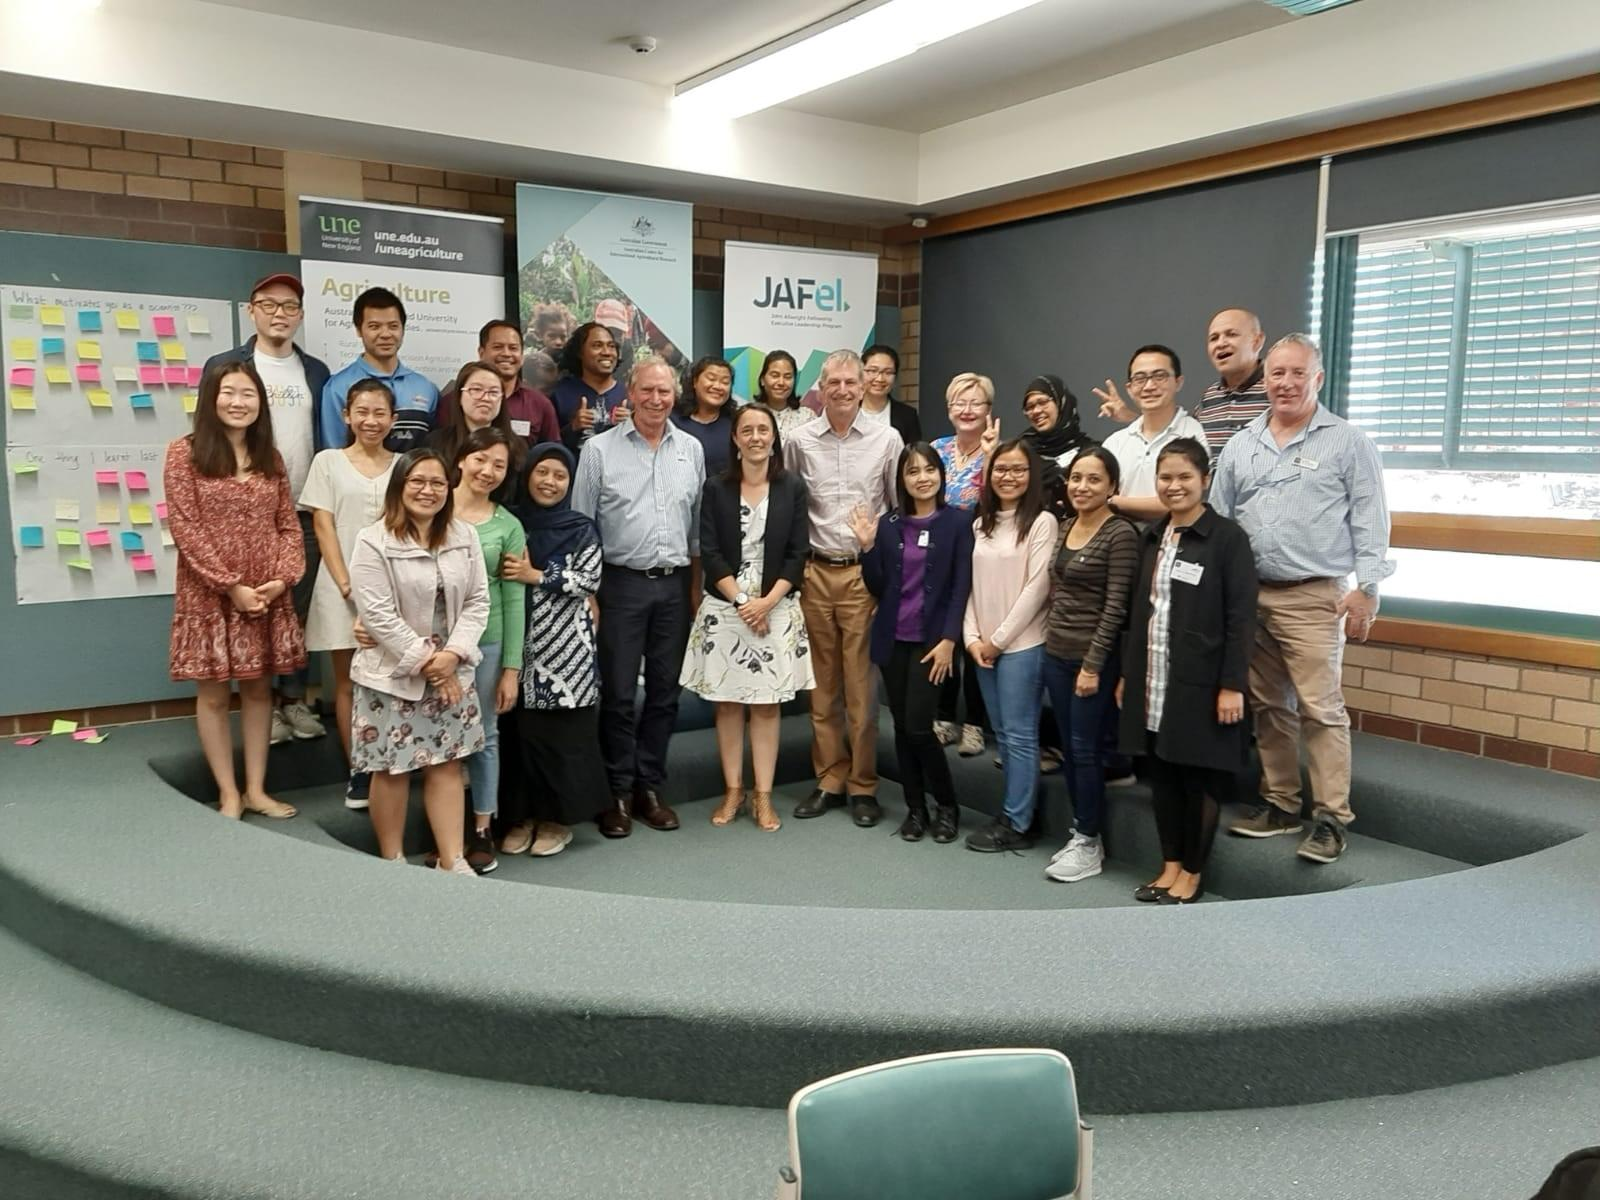 JAFel participants at the University of New England